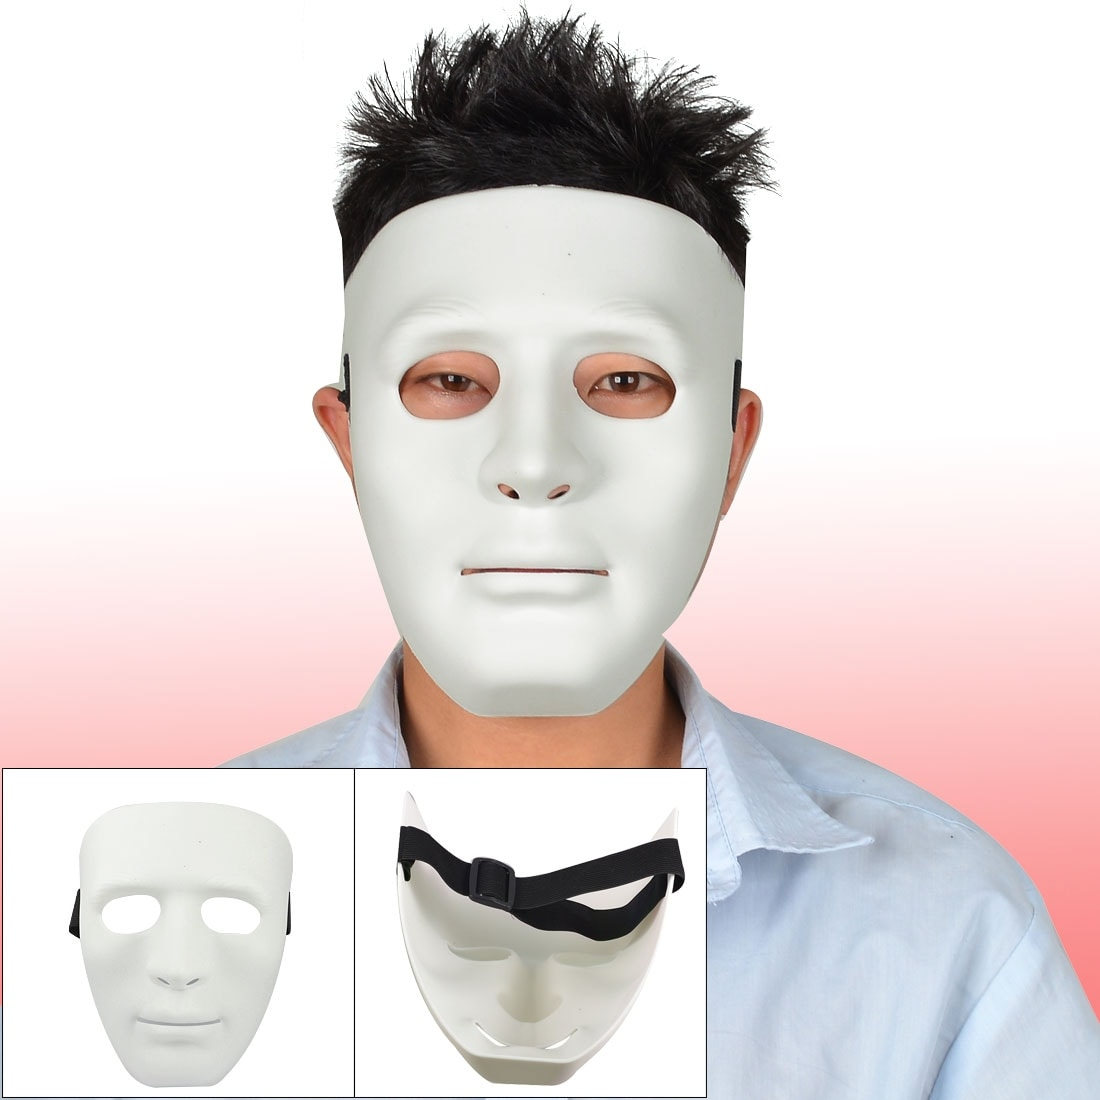 Shop Man Adjustable Black Elastic Band Full Face Plastic Halloween